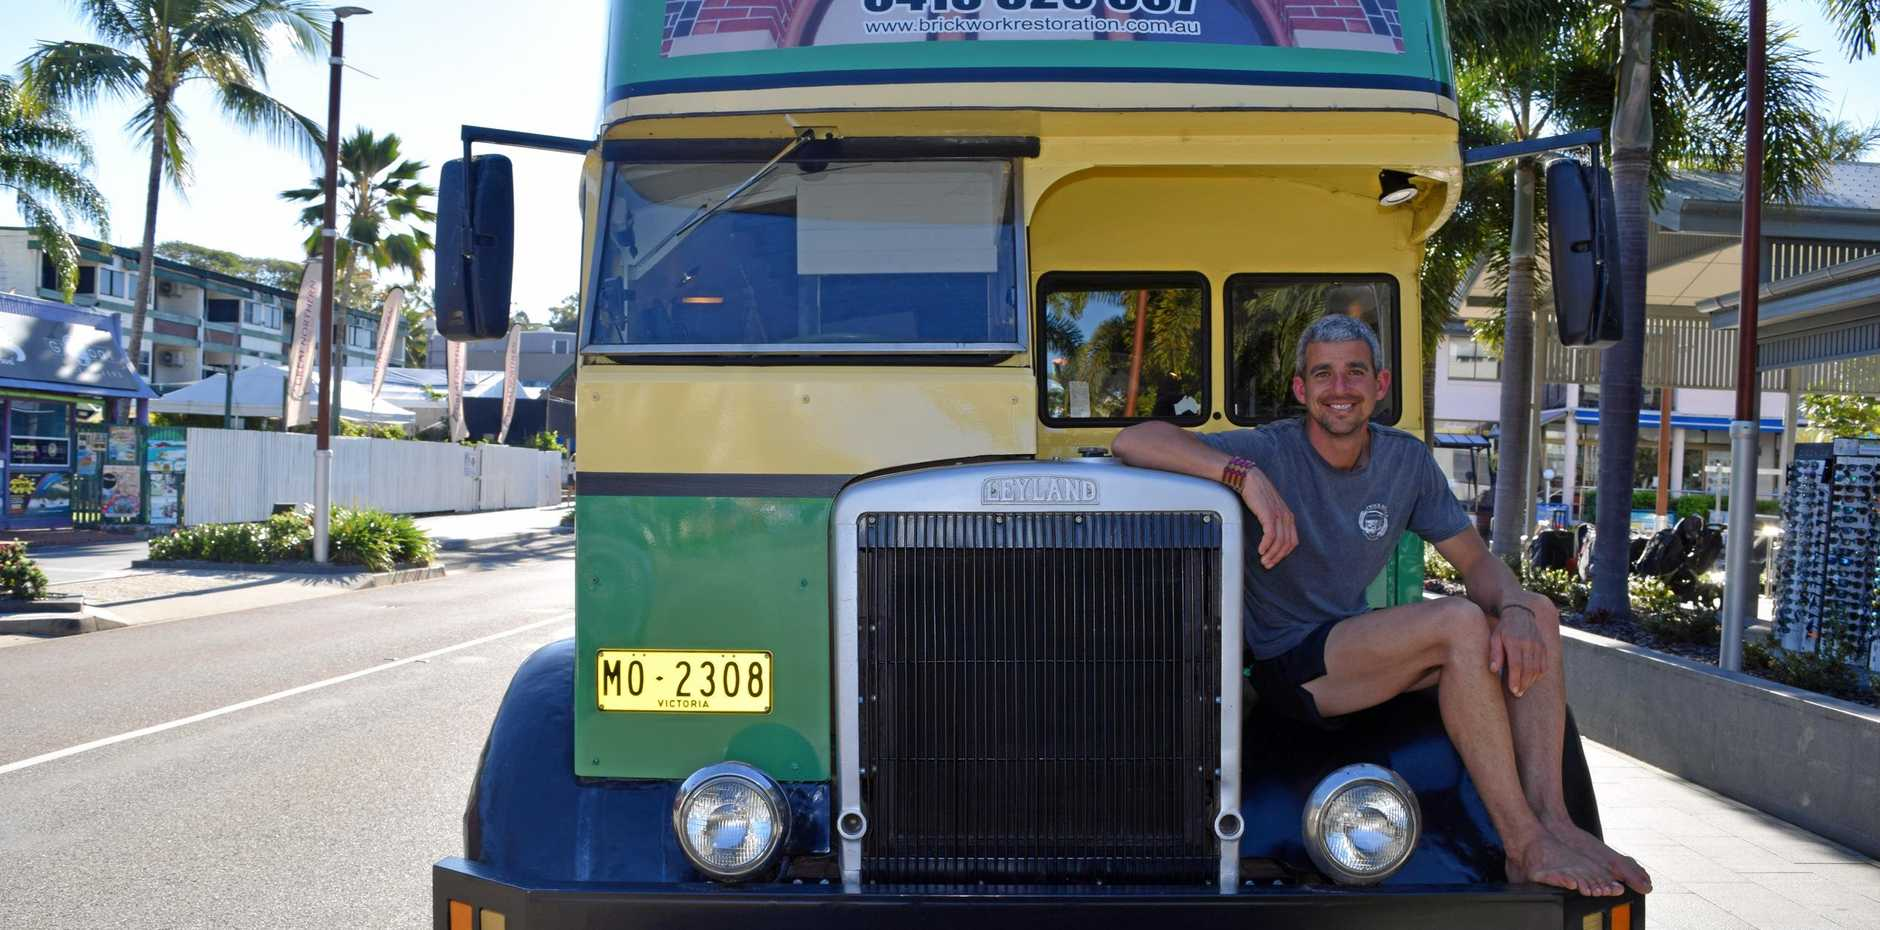 Lorie Norton is travelling around Australia on his restored double decker bus raising money for charity Eli's Gift.